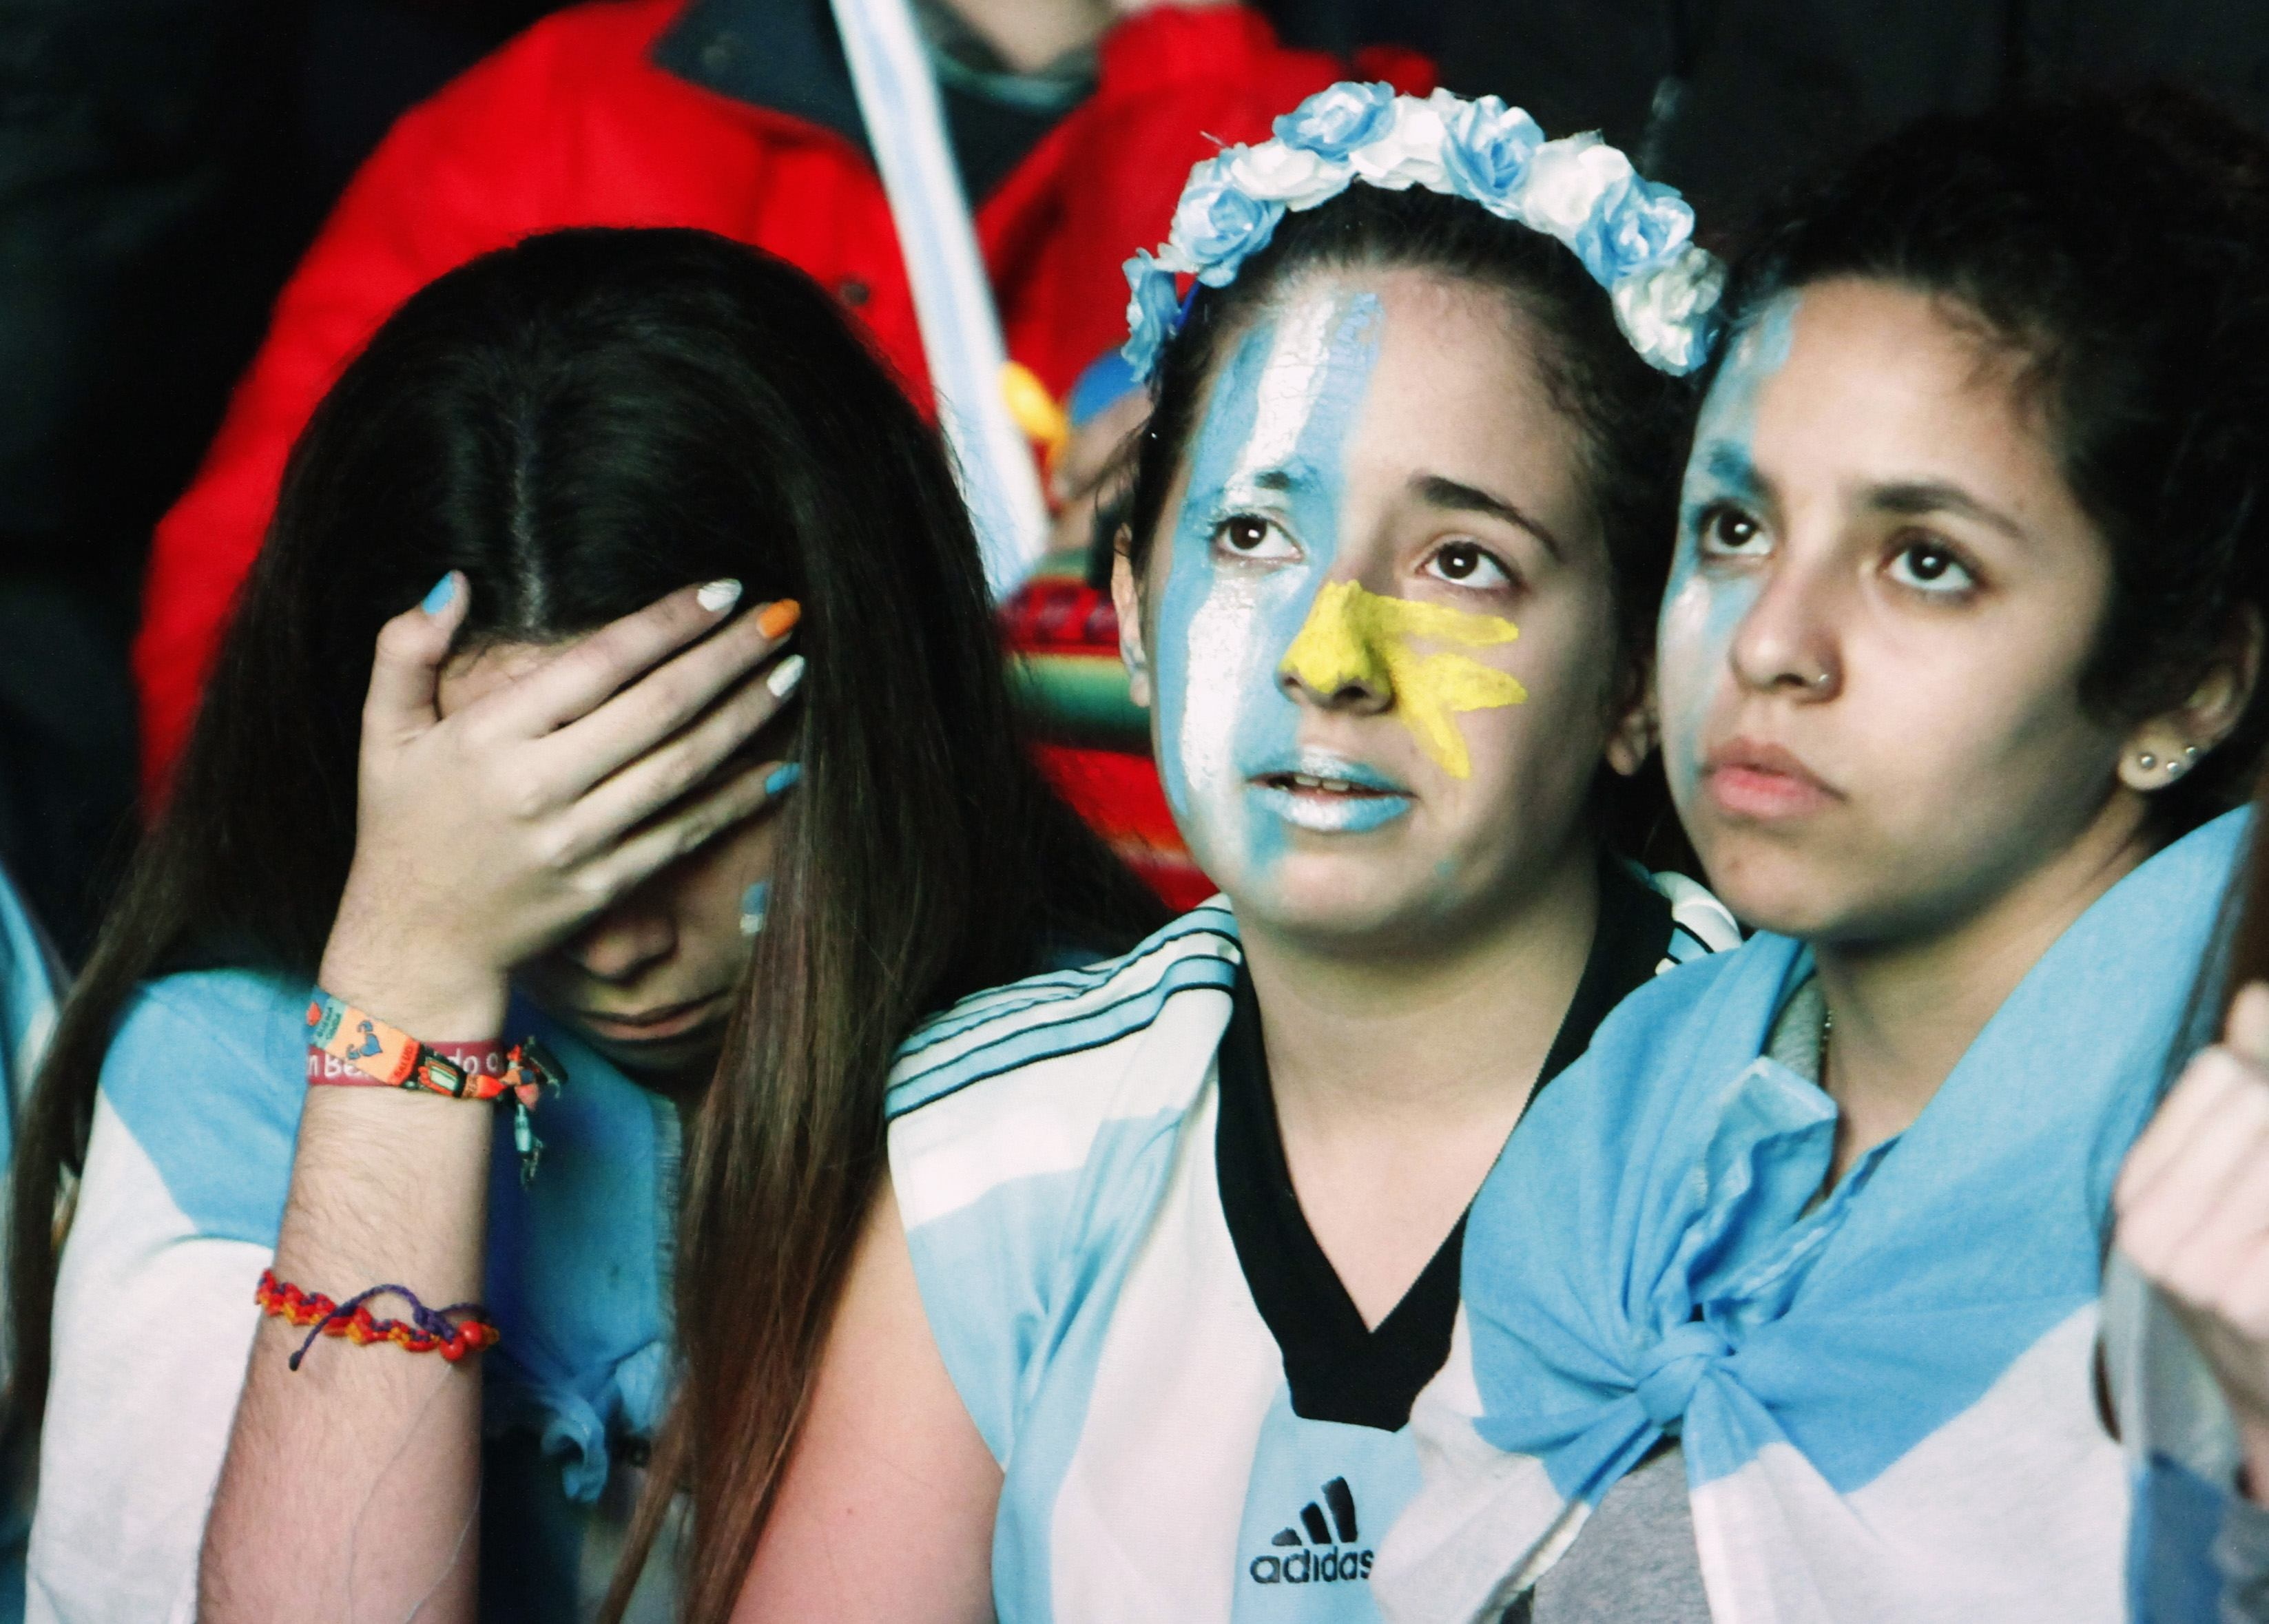 Argentina fans react after Argentina lost to Germany in their 2014 World Cup final soccer match in Brazil, at a public square viewing area in Buenos Aires. Reuters